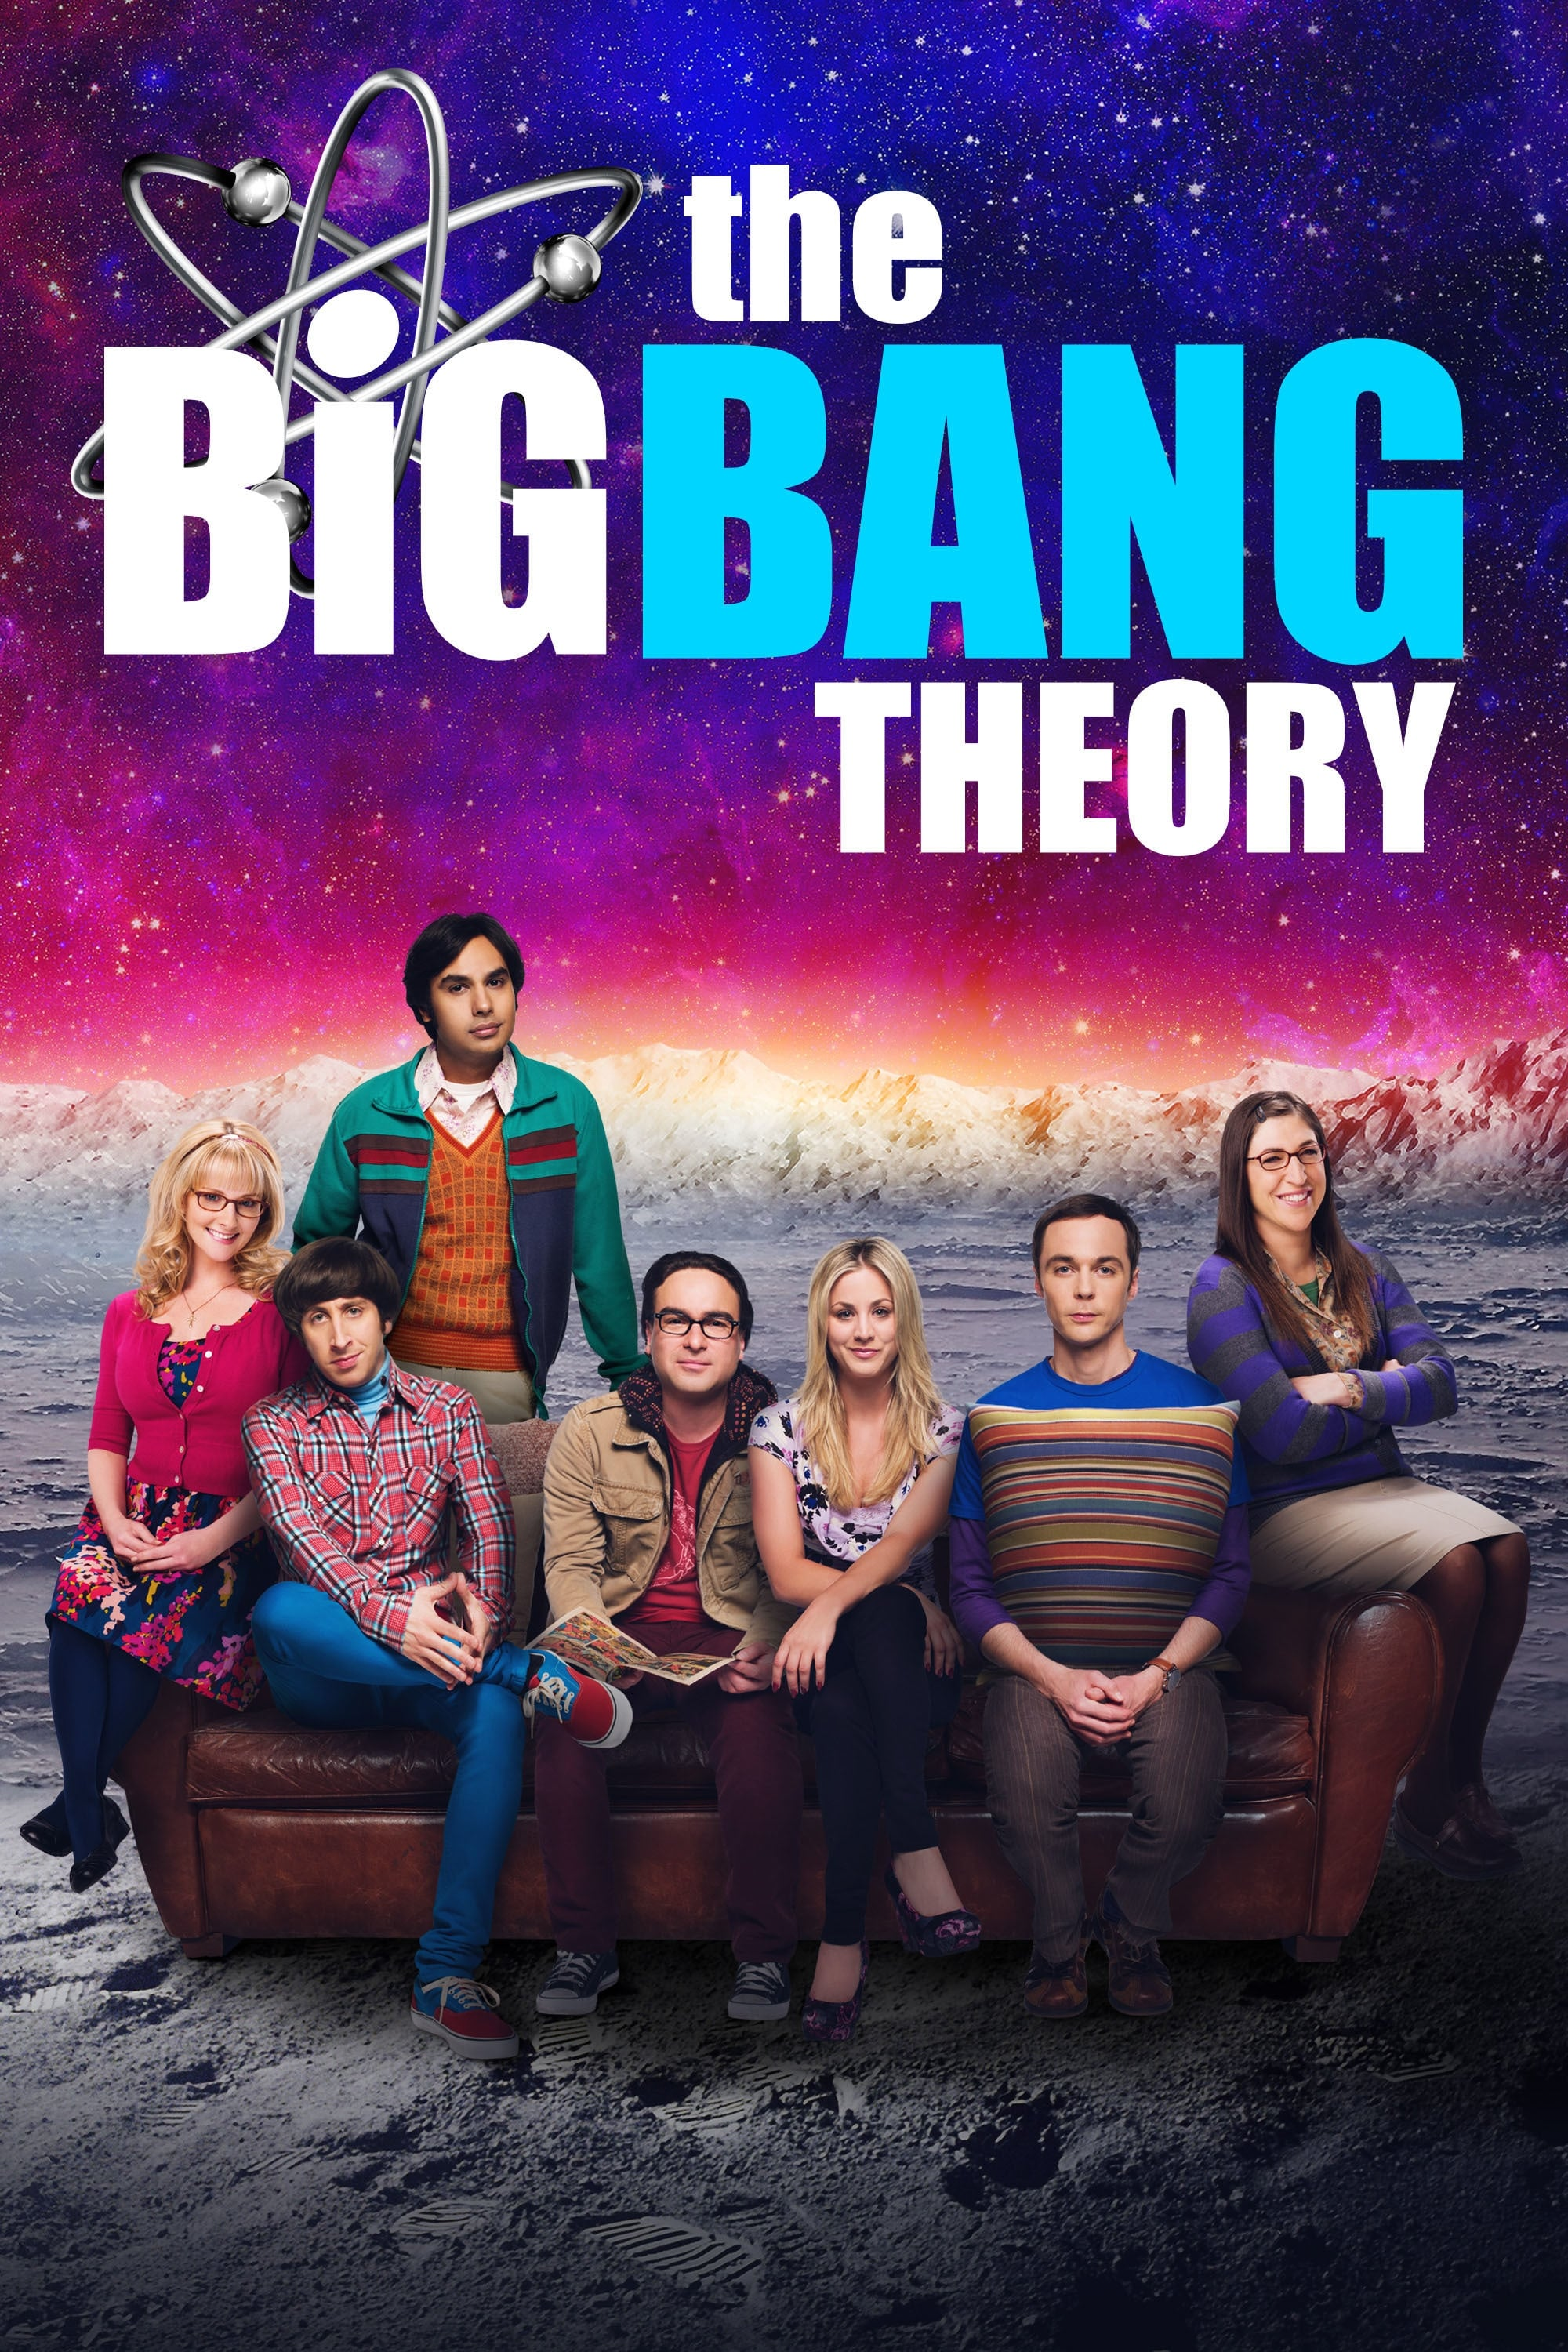 The Big Bang Theory 12ª Temporada (2018) Torrent - WEB-DL 720p e 1080p Dublado / Dual Áudio e Legendado Download